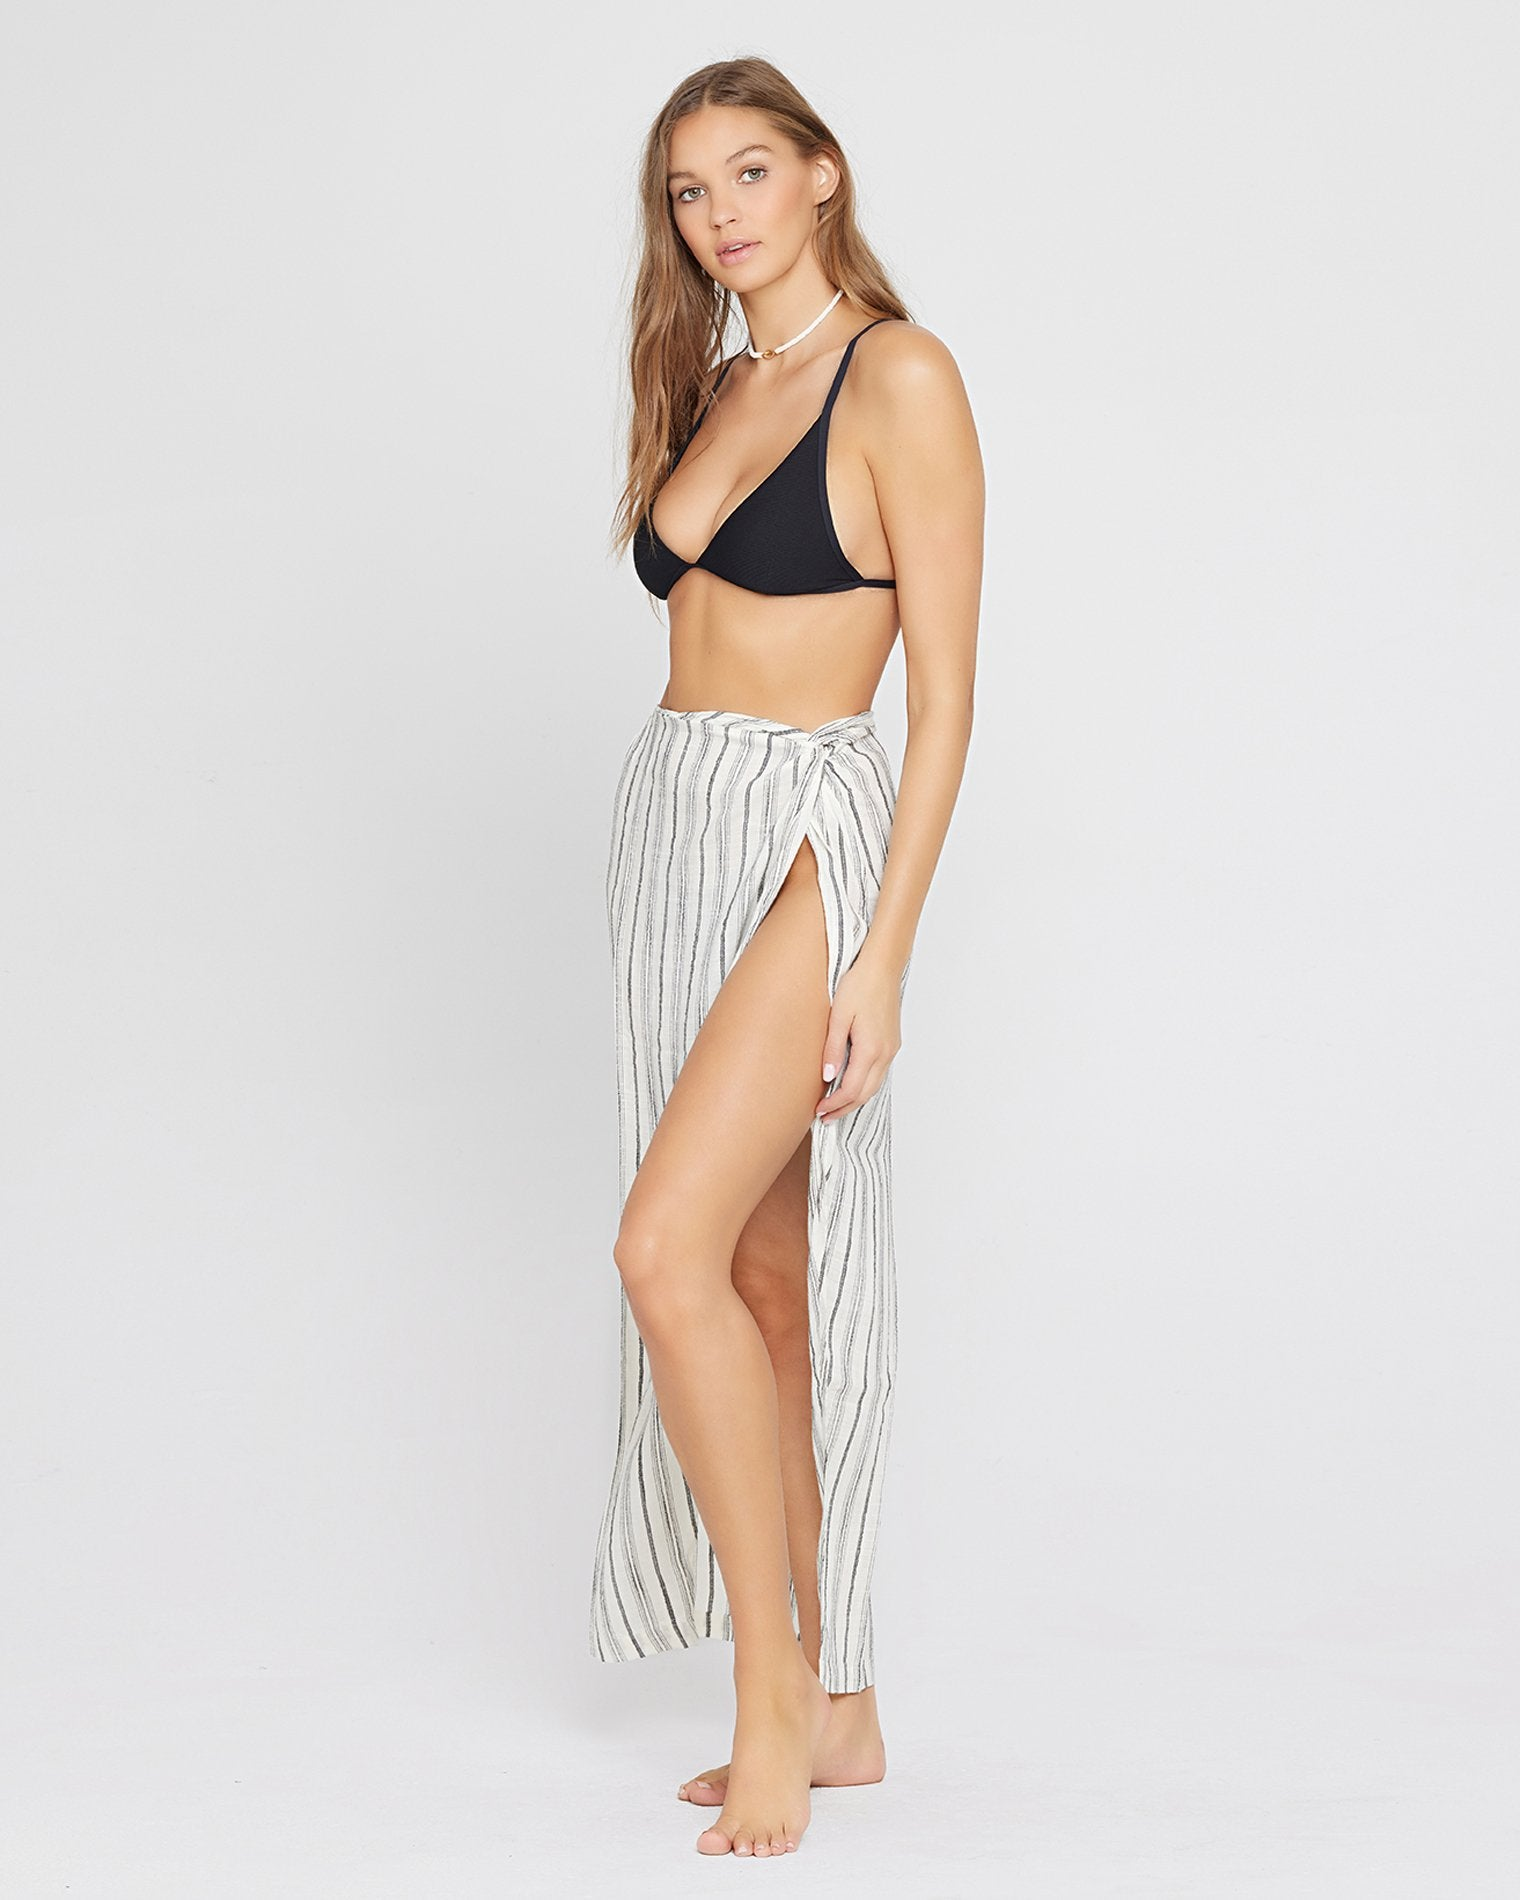 Summer Nights Stripe | Model: Daria (size: S)